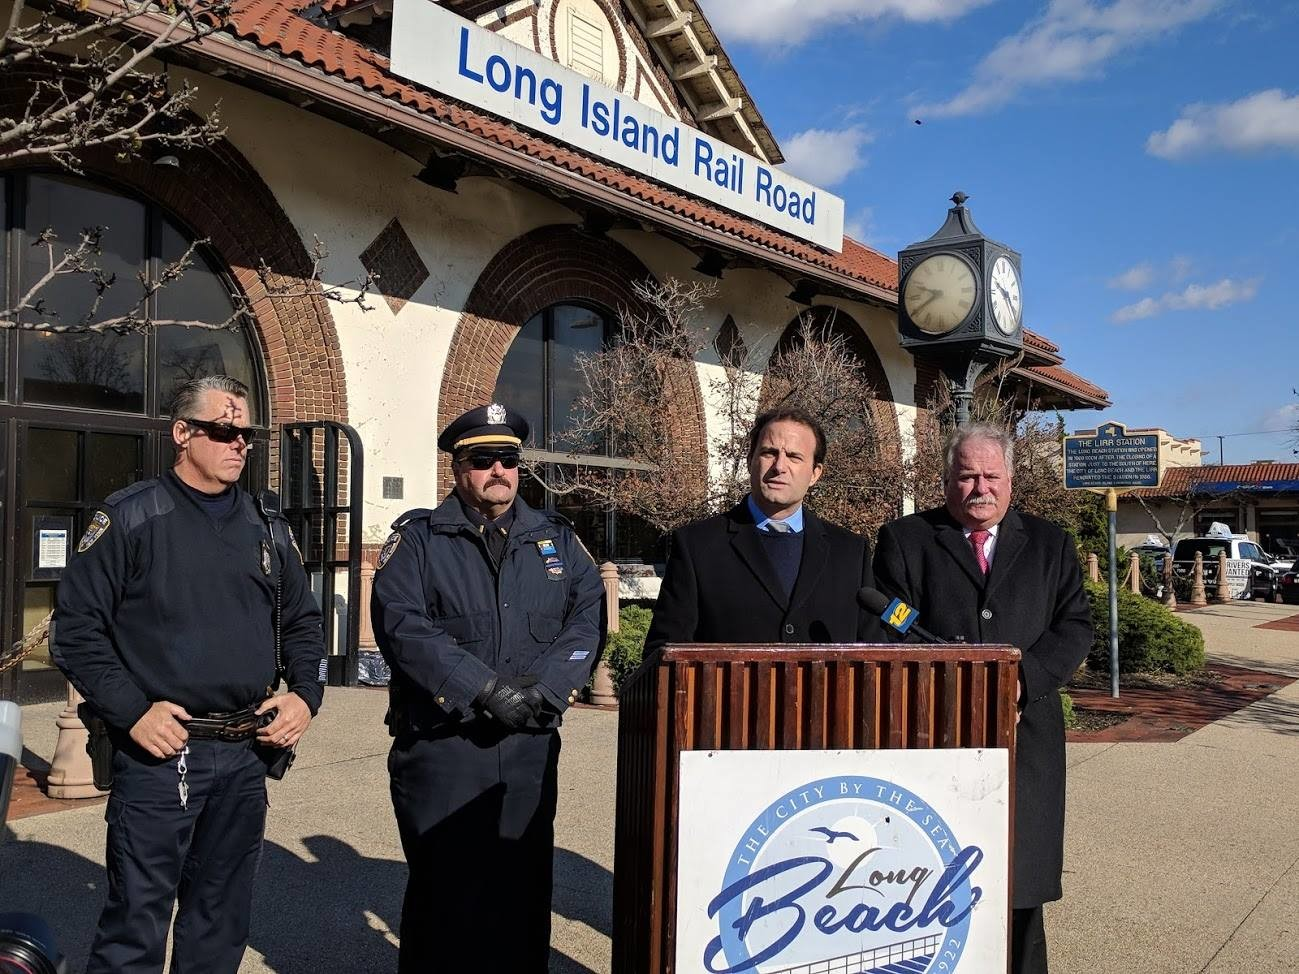 City Council Vice President Anthony Eramo, second from right, joined by Long Beach police officers and Commissioner Mike Tangney, announced plans to increase security measures at Long Beach's Long Island Rail Road station on Monday.